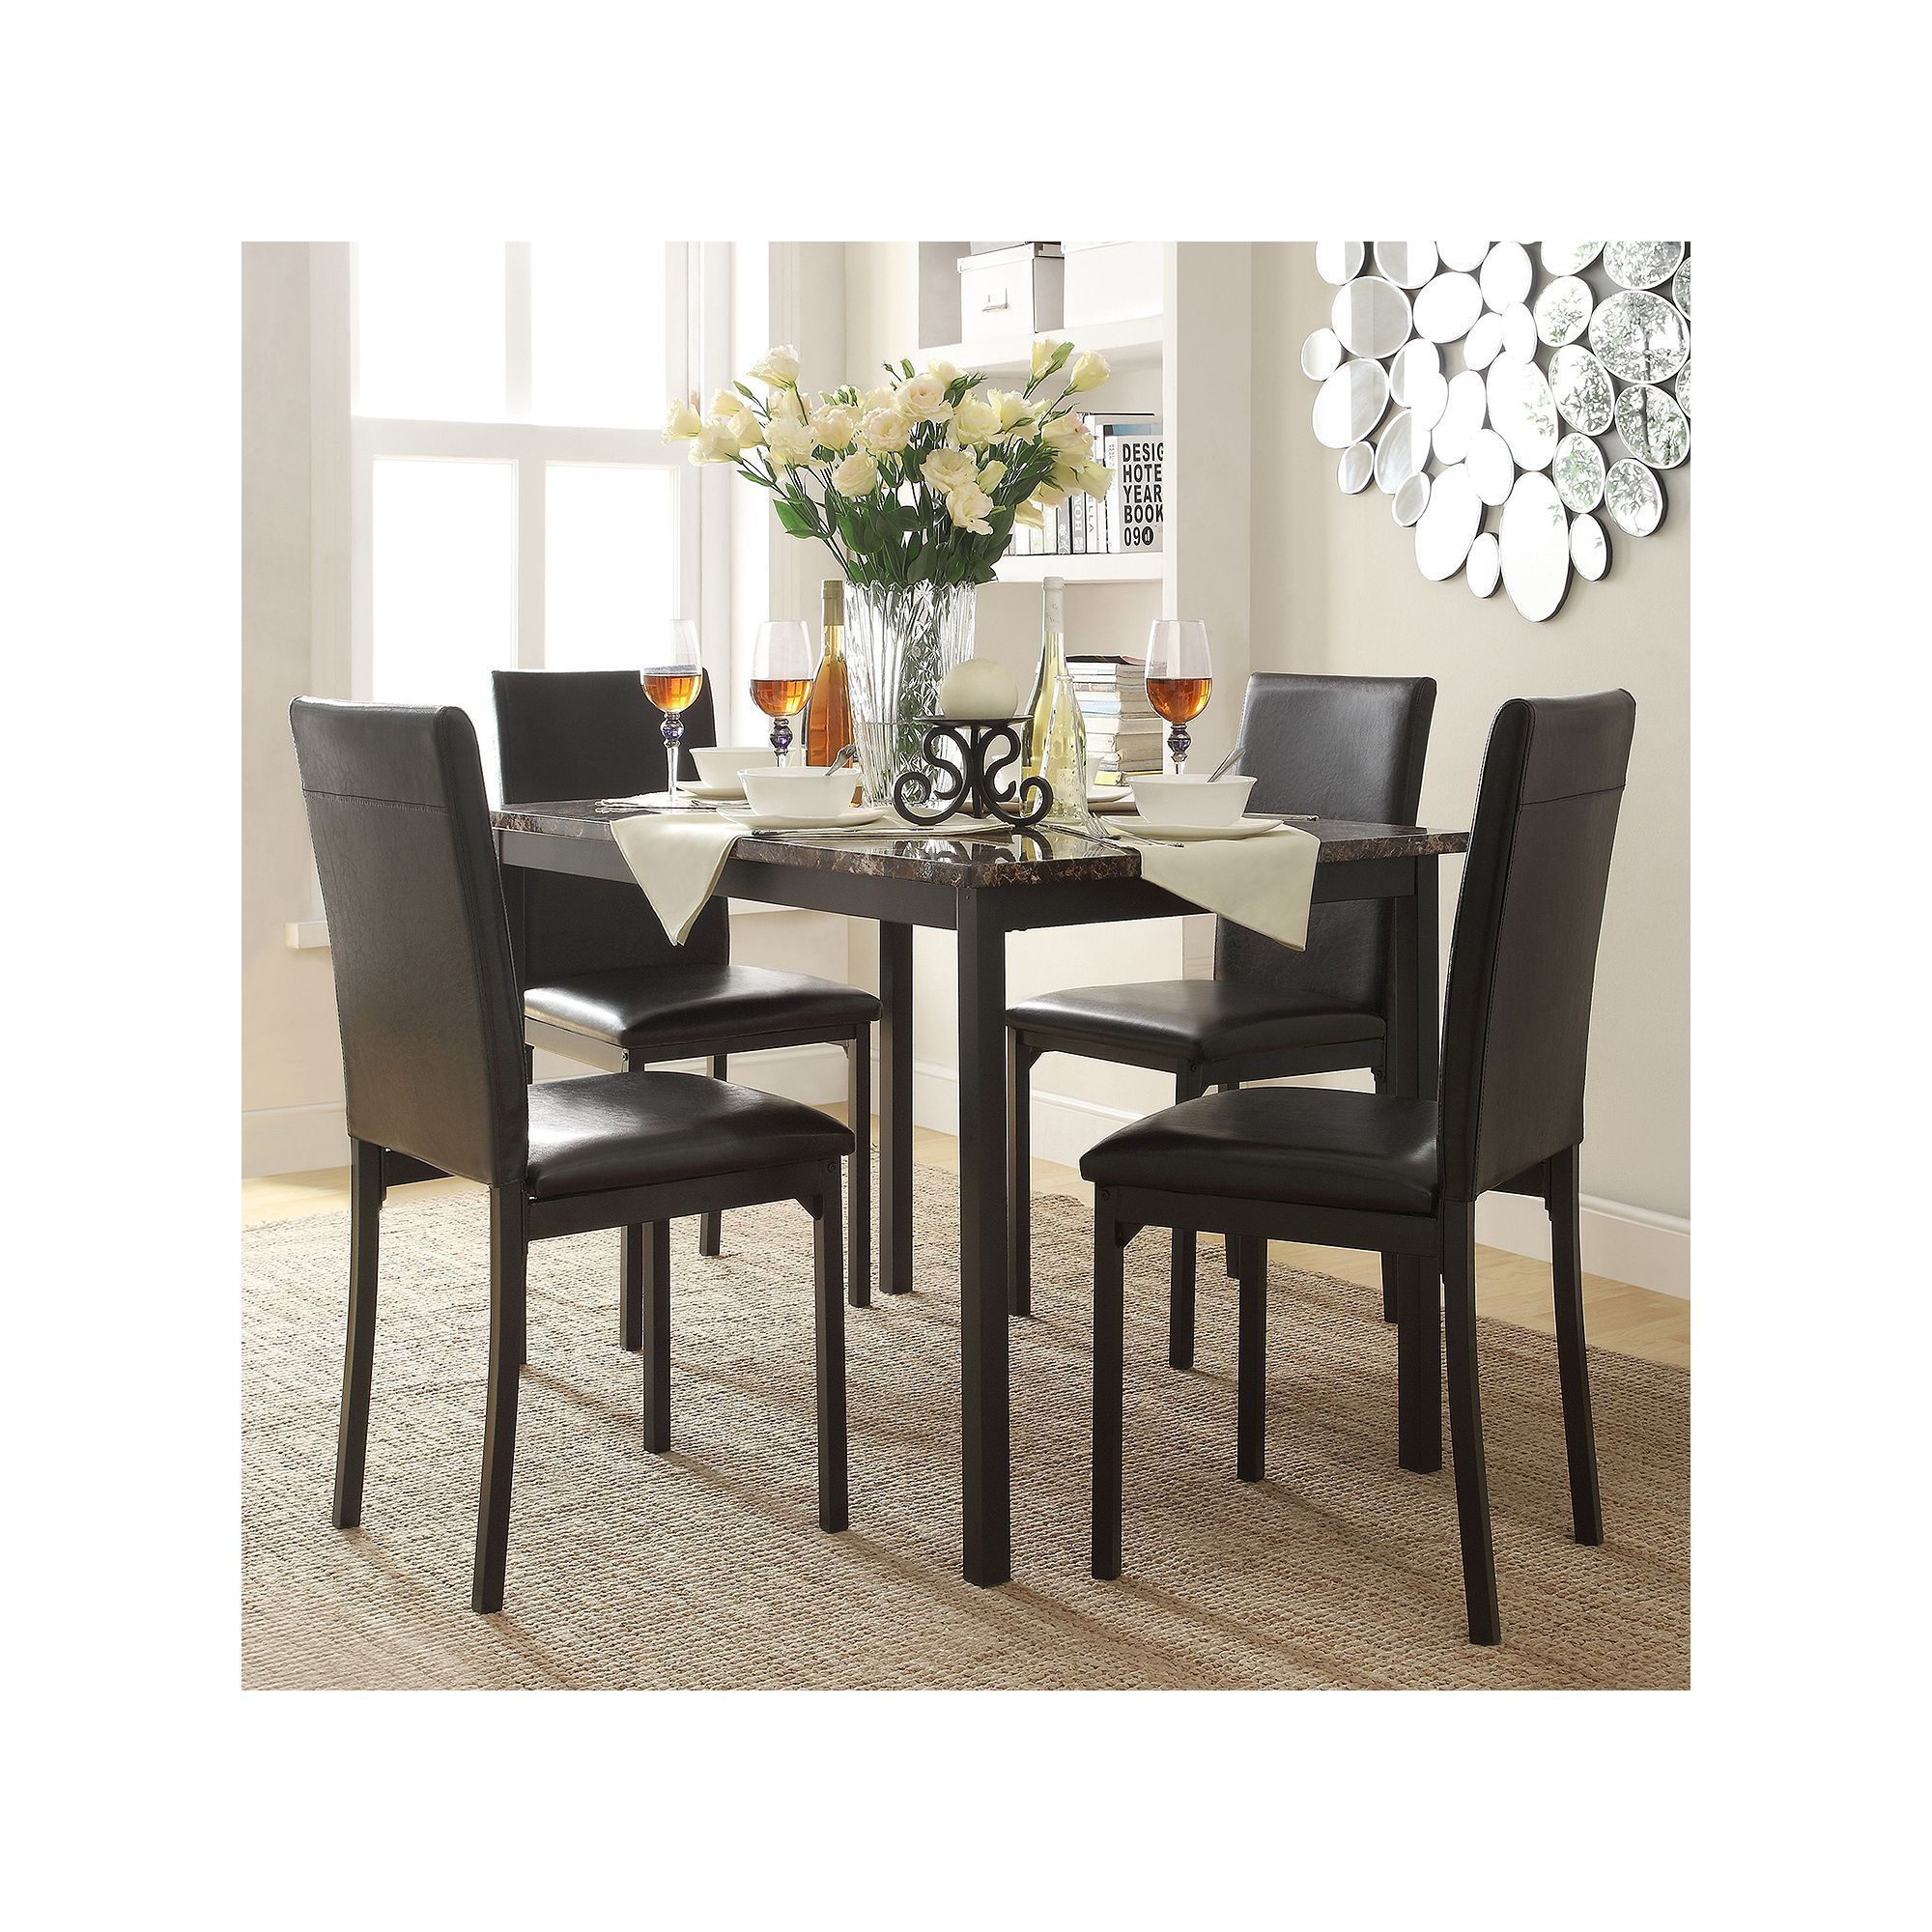 HomeVance Catania 5 piece Dining Table and Chair